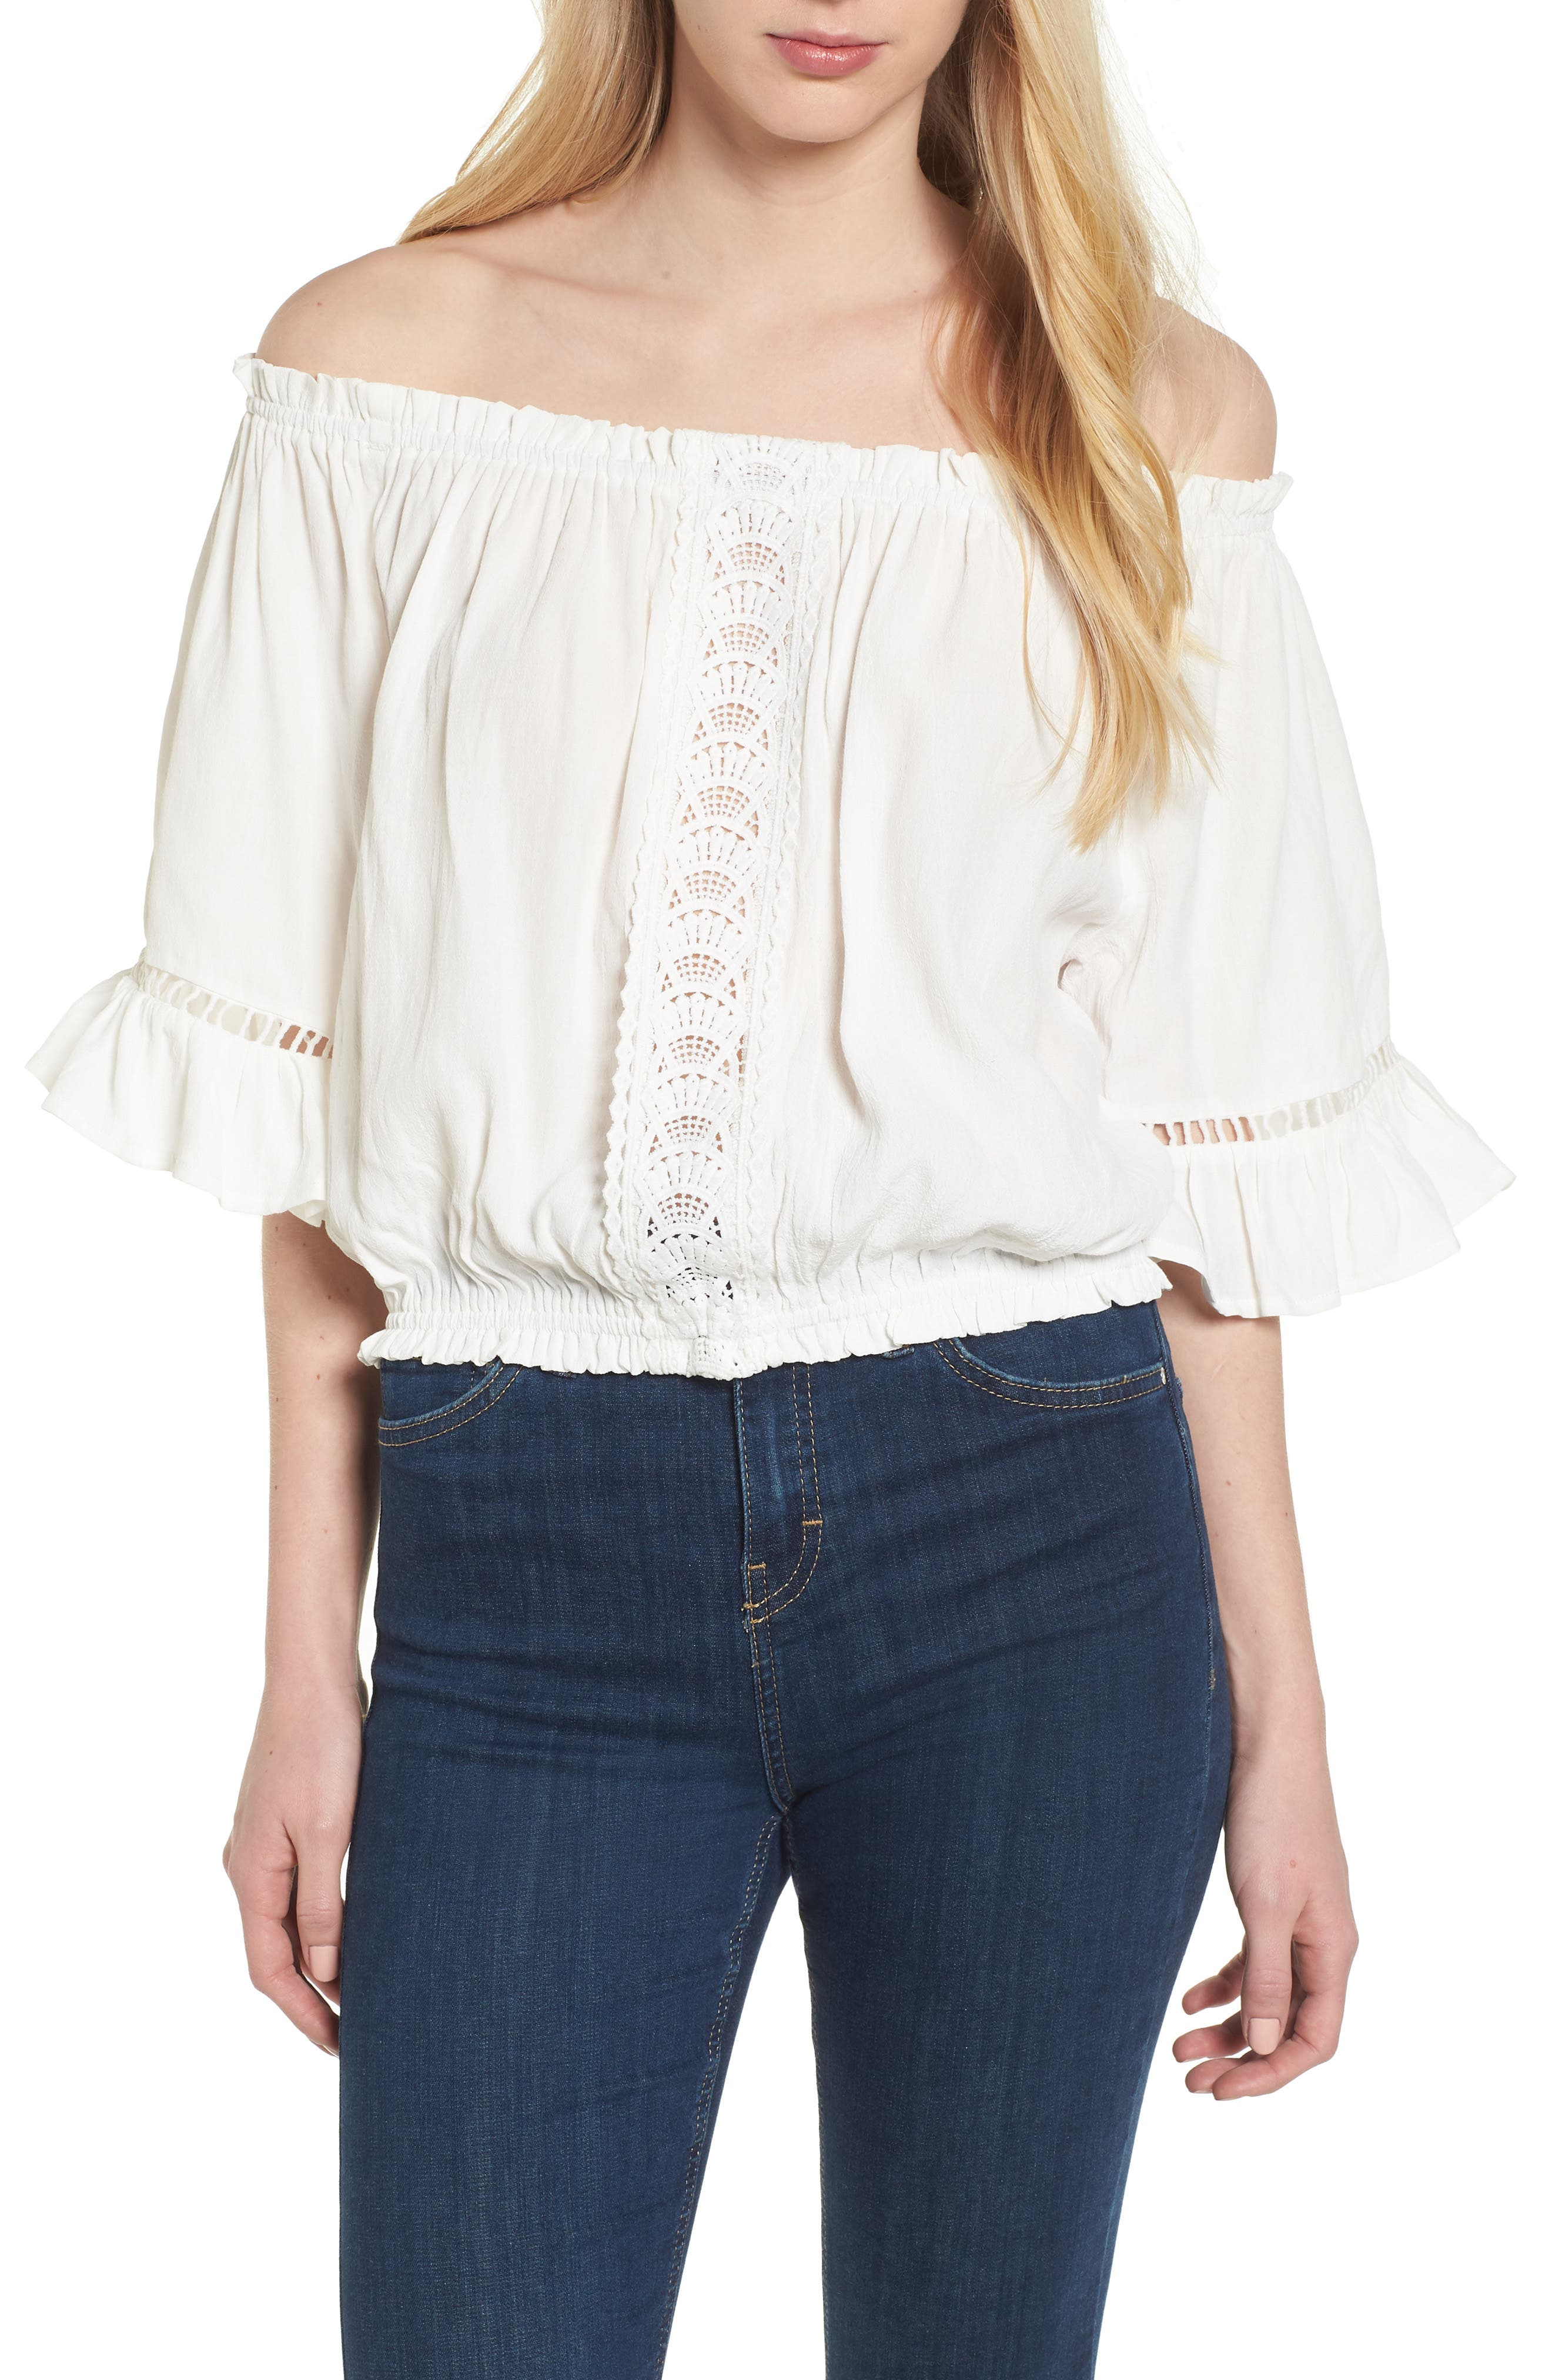 Bishop + Young Off the Shoulder Poet Top,                         Main,                         color, White